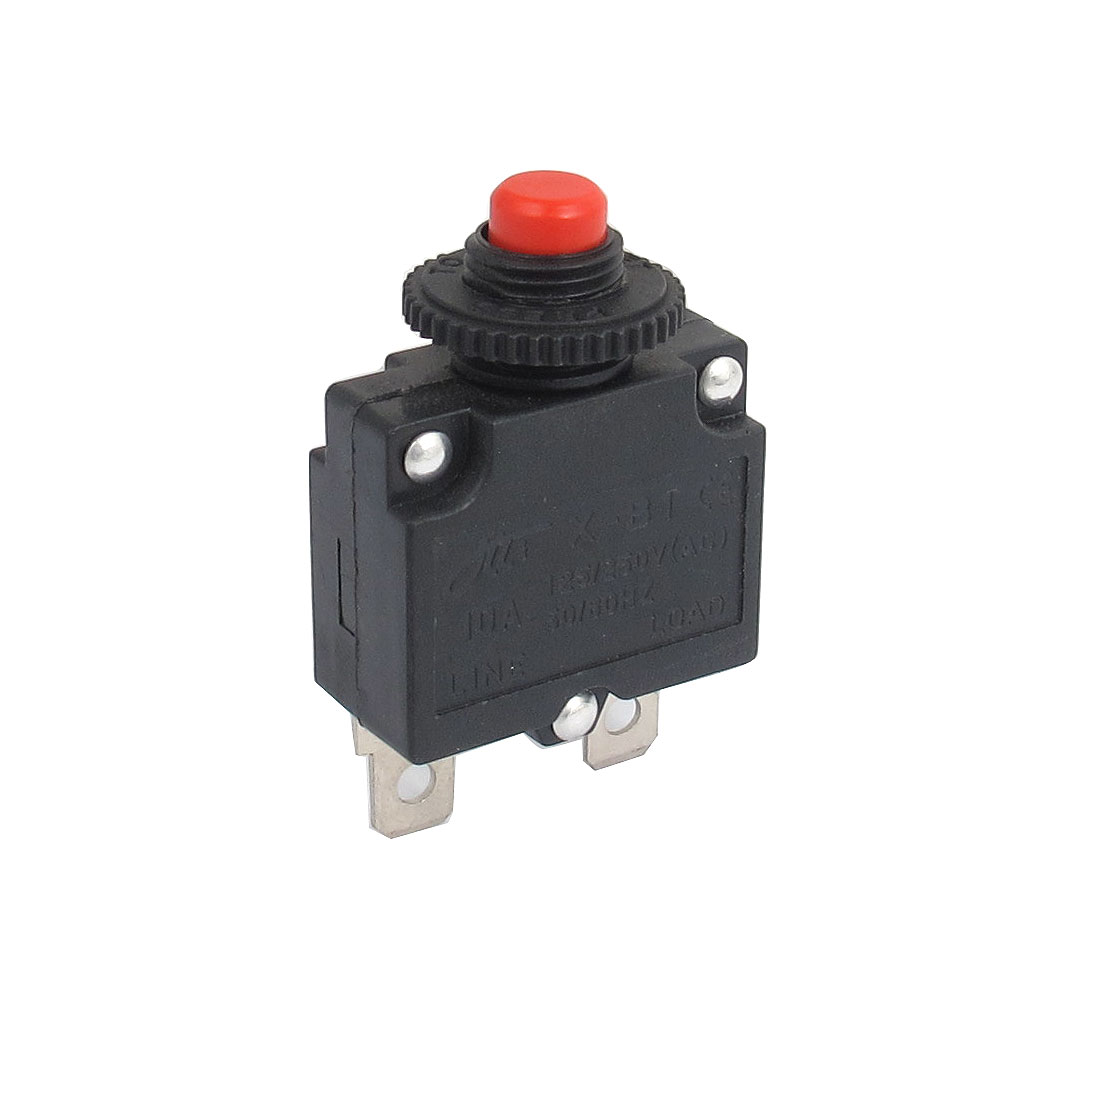 AC 125/250V 10A Air Compressor Protective Circuit Breaker Overload Push Button Switch